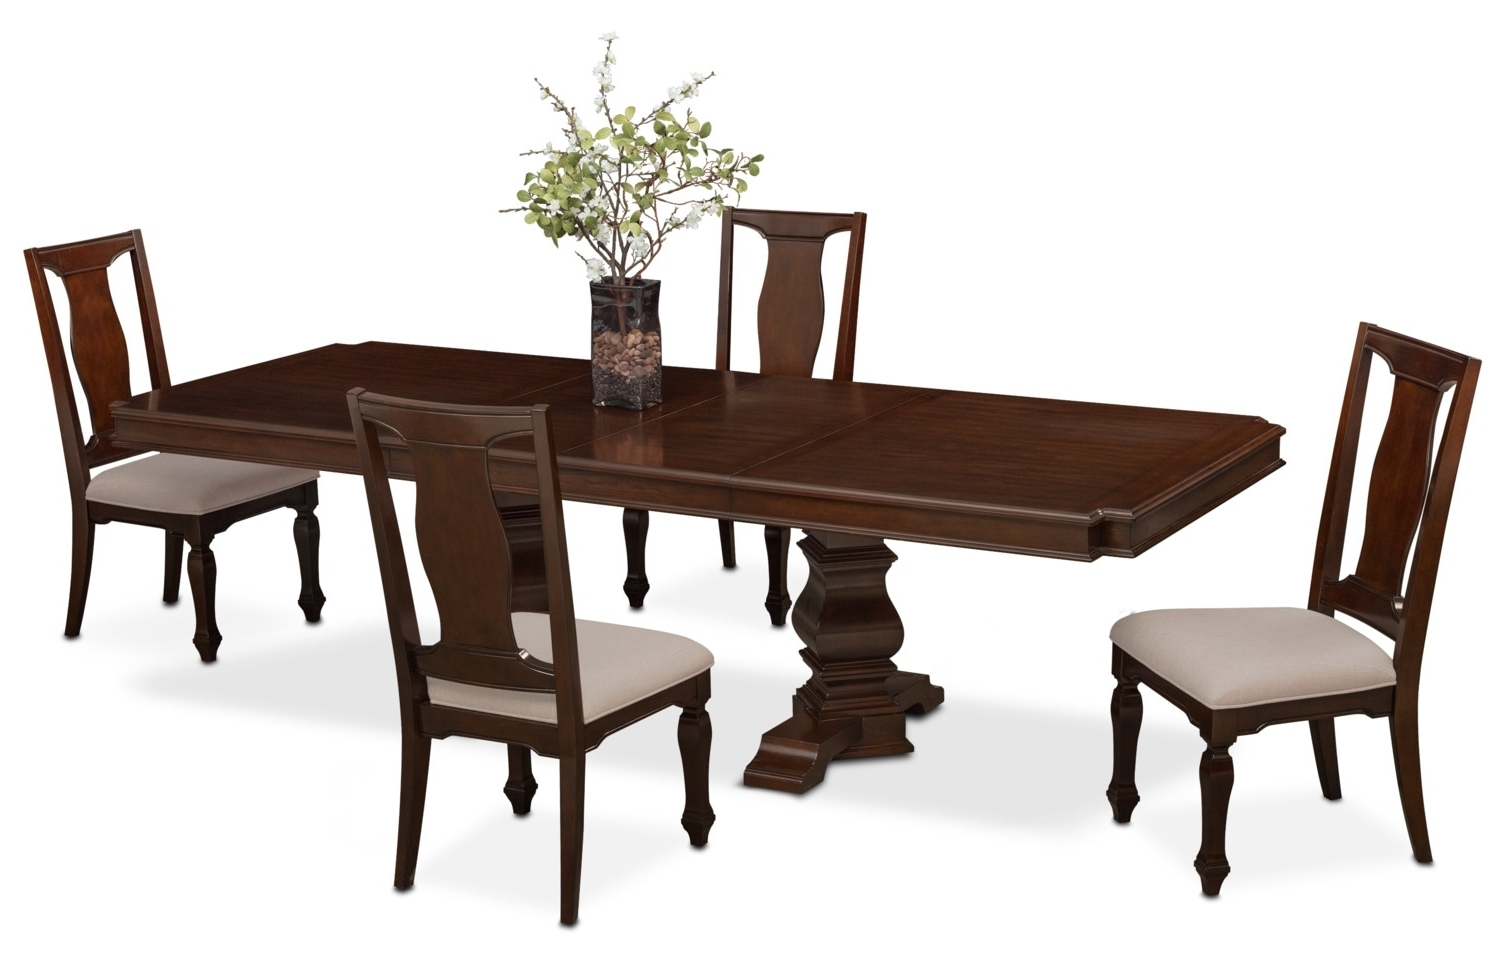 Vienna Dining Tables With Regard To Most Popular Vienna Rectangular Dining Table And 4 Side Chairs – Merlot (View 21 of 25)